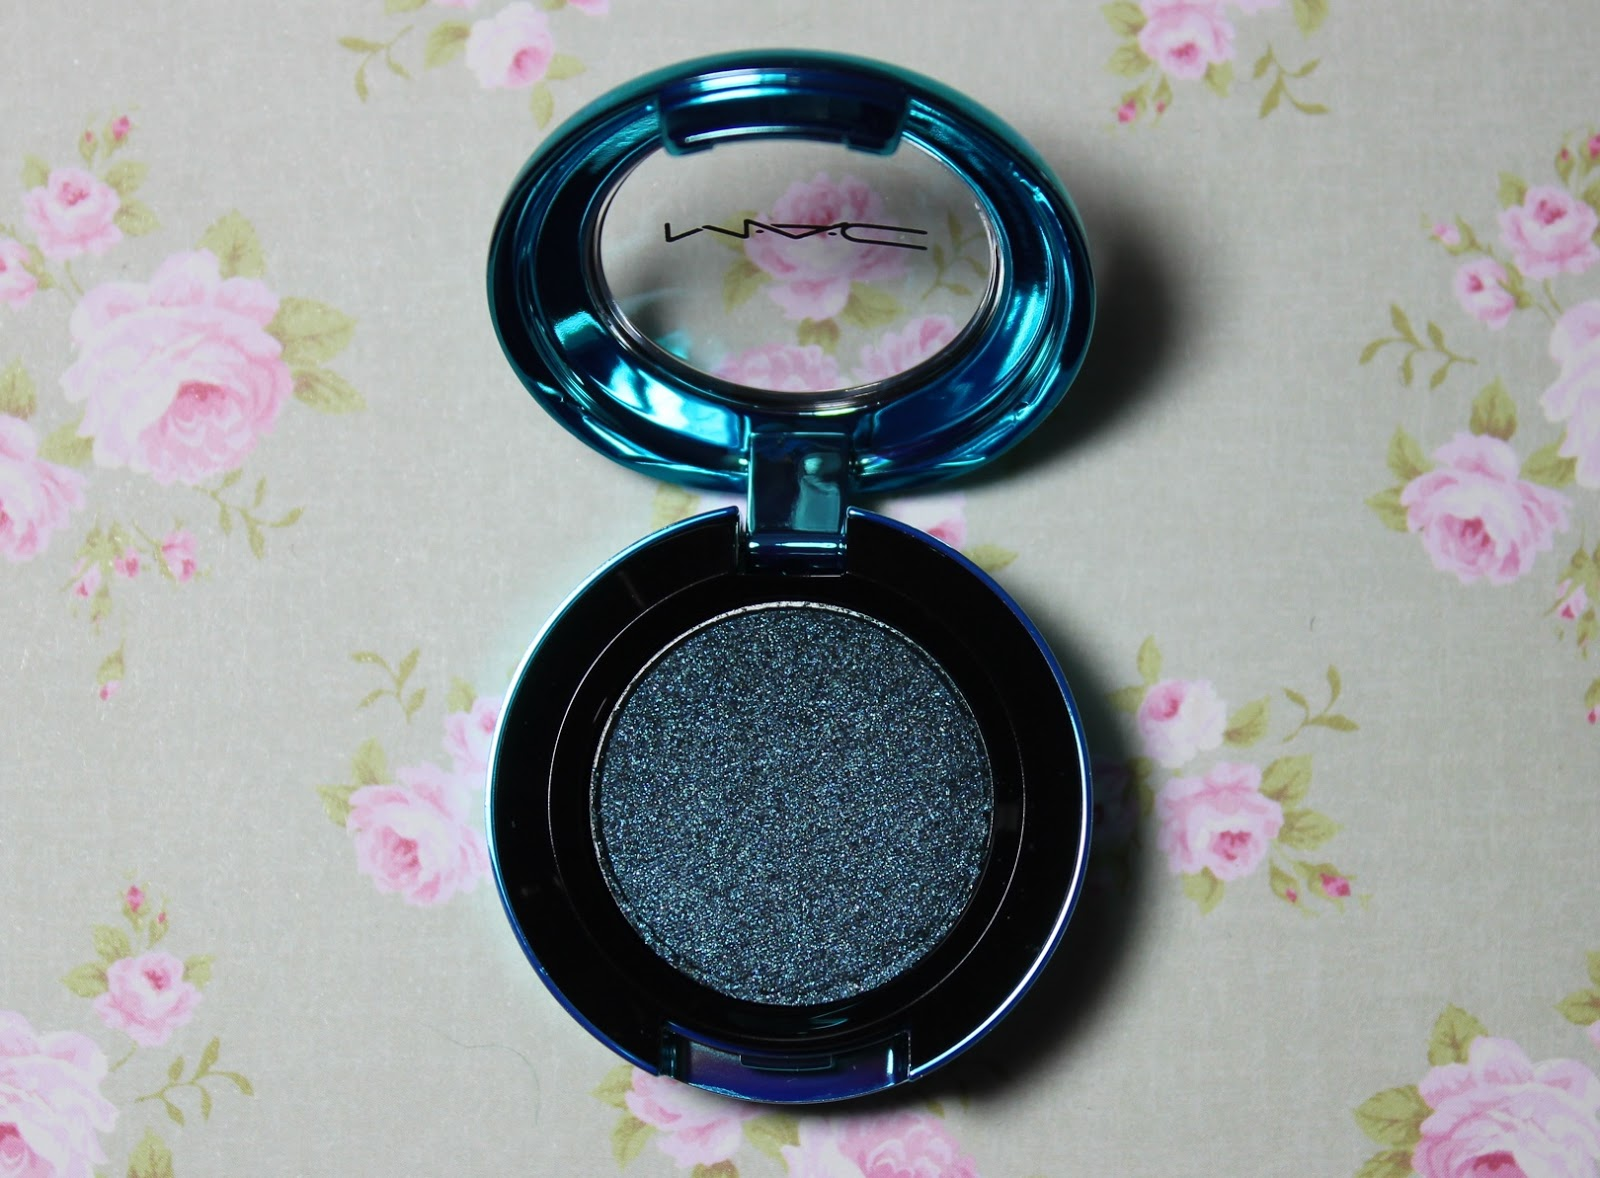 mac colourdrenched pigment tonights the night eyeshadow